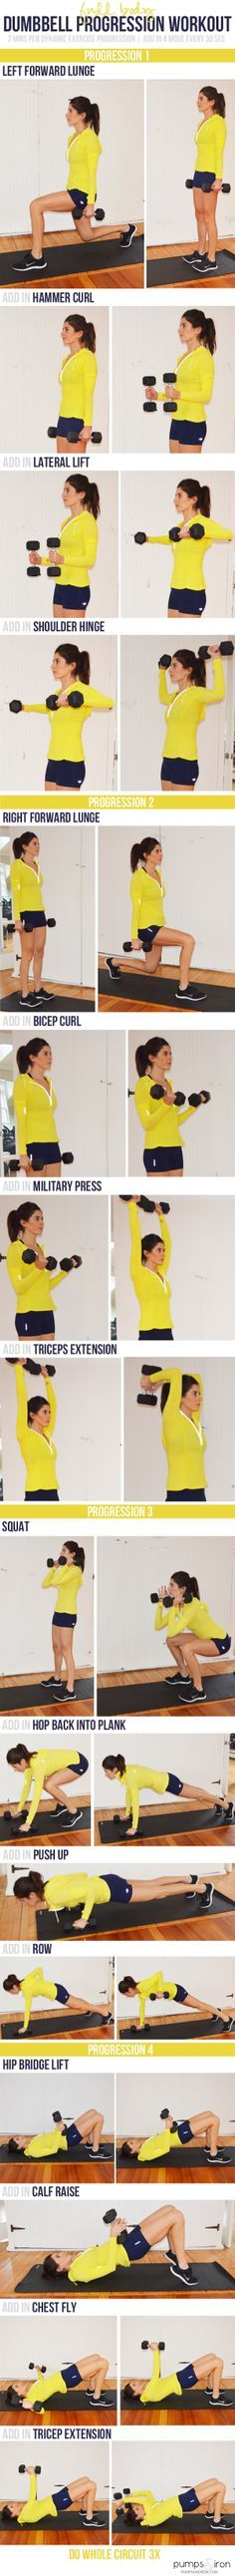 All you'll need for today's workout is a set of dumbbells. There's not really any jumping around involved, so this would be a good one if you're working out at home and have to be conscious of down…